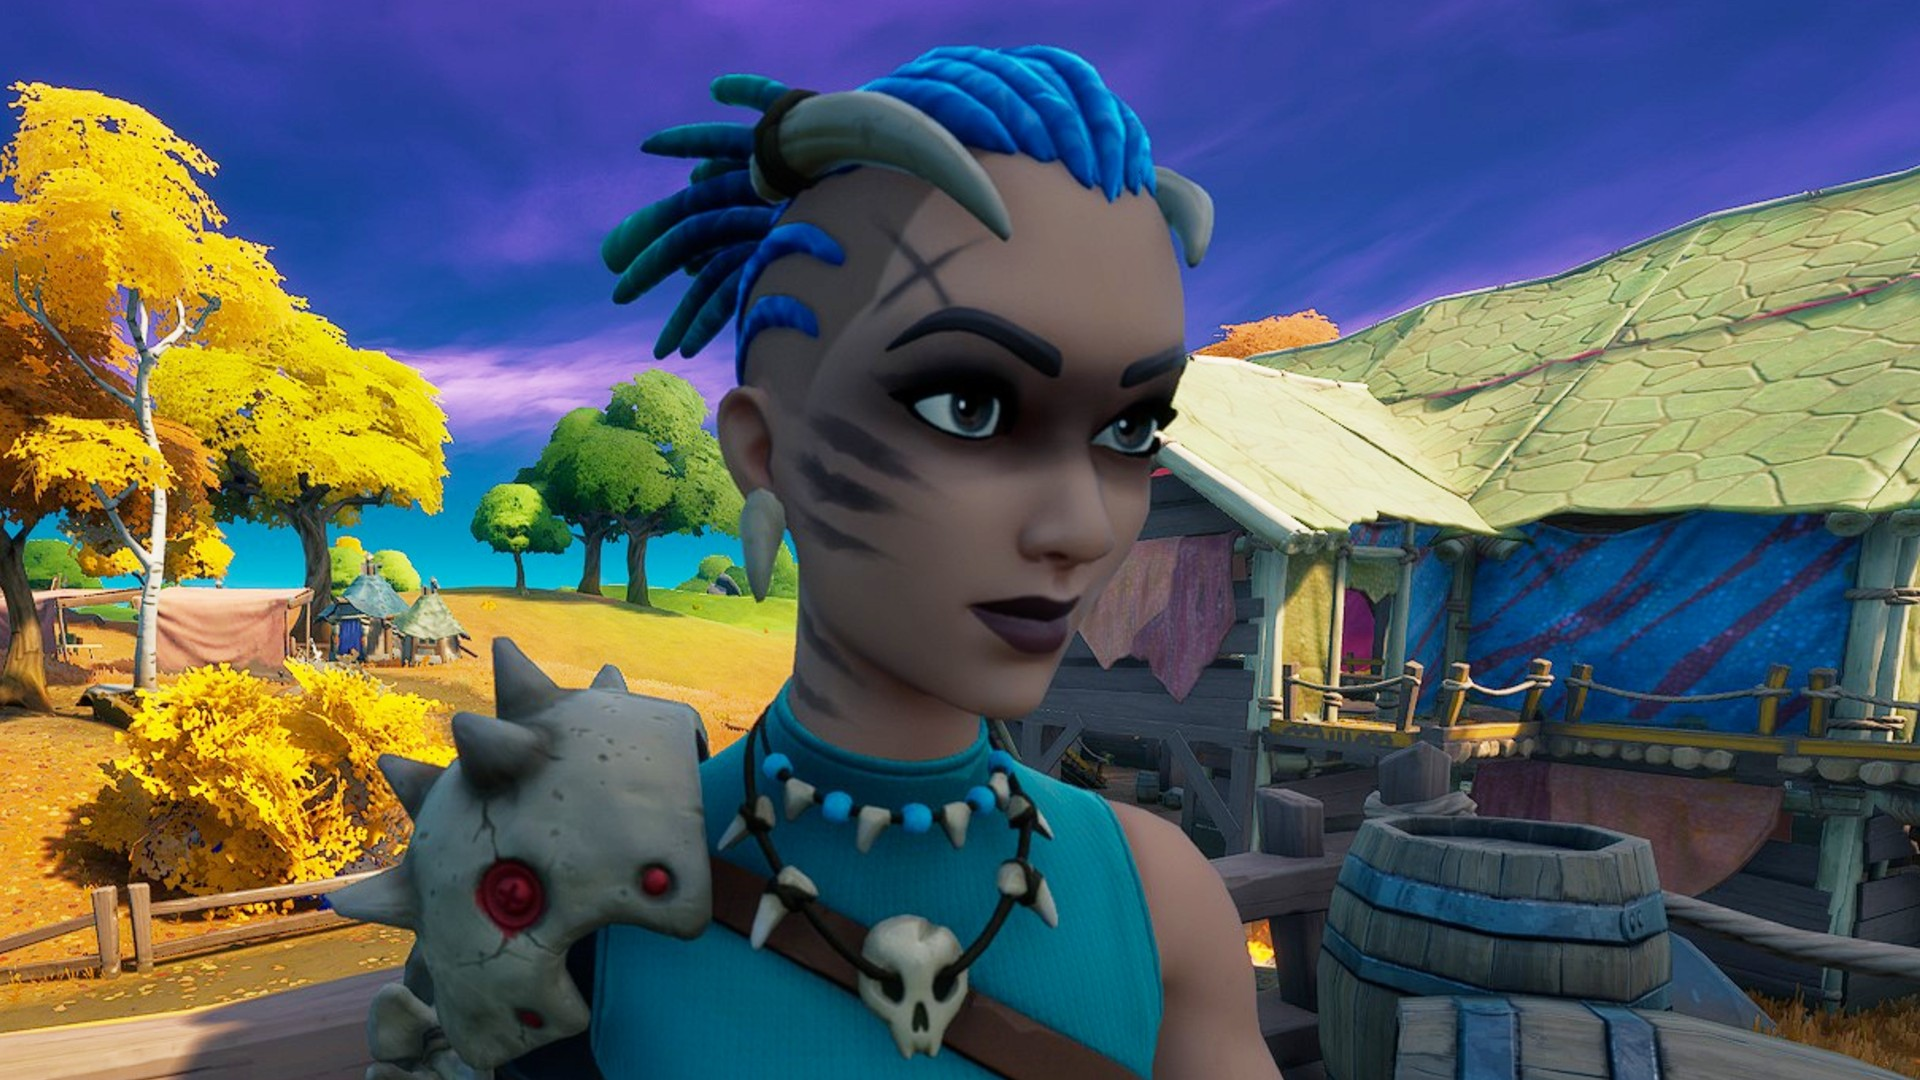 Where to find Tarana and how to get artifacts in Fortnite